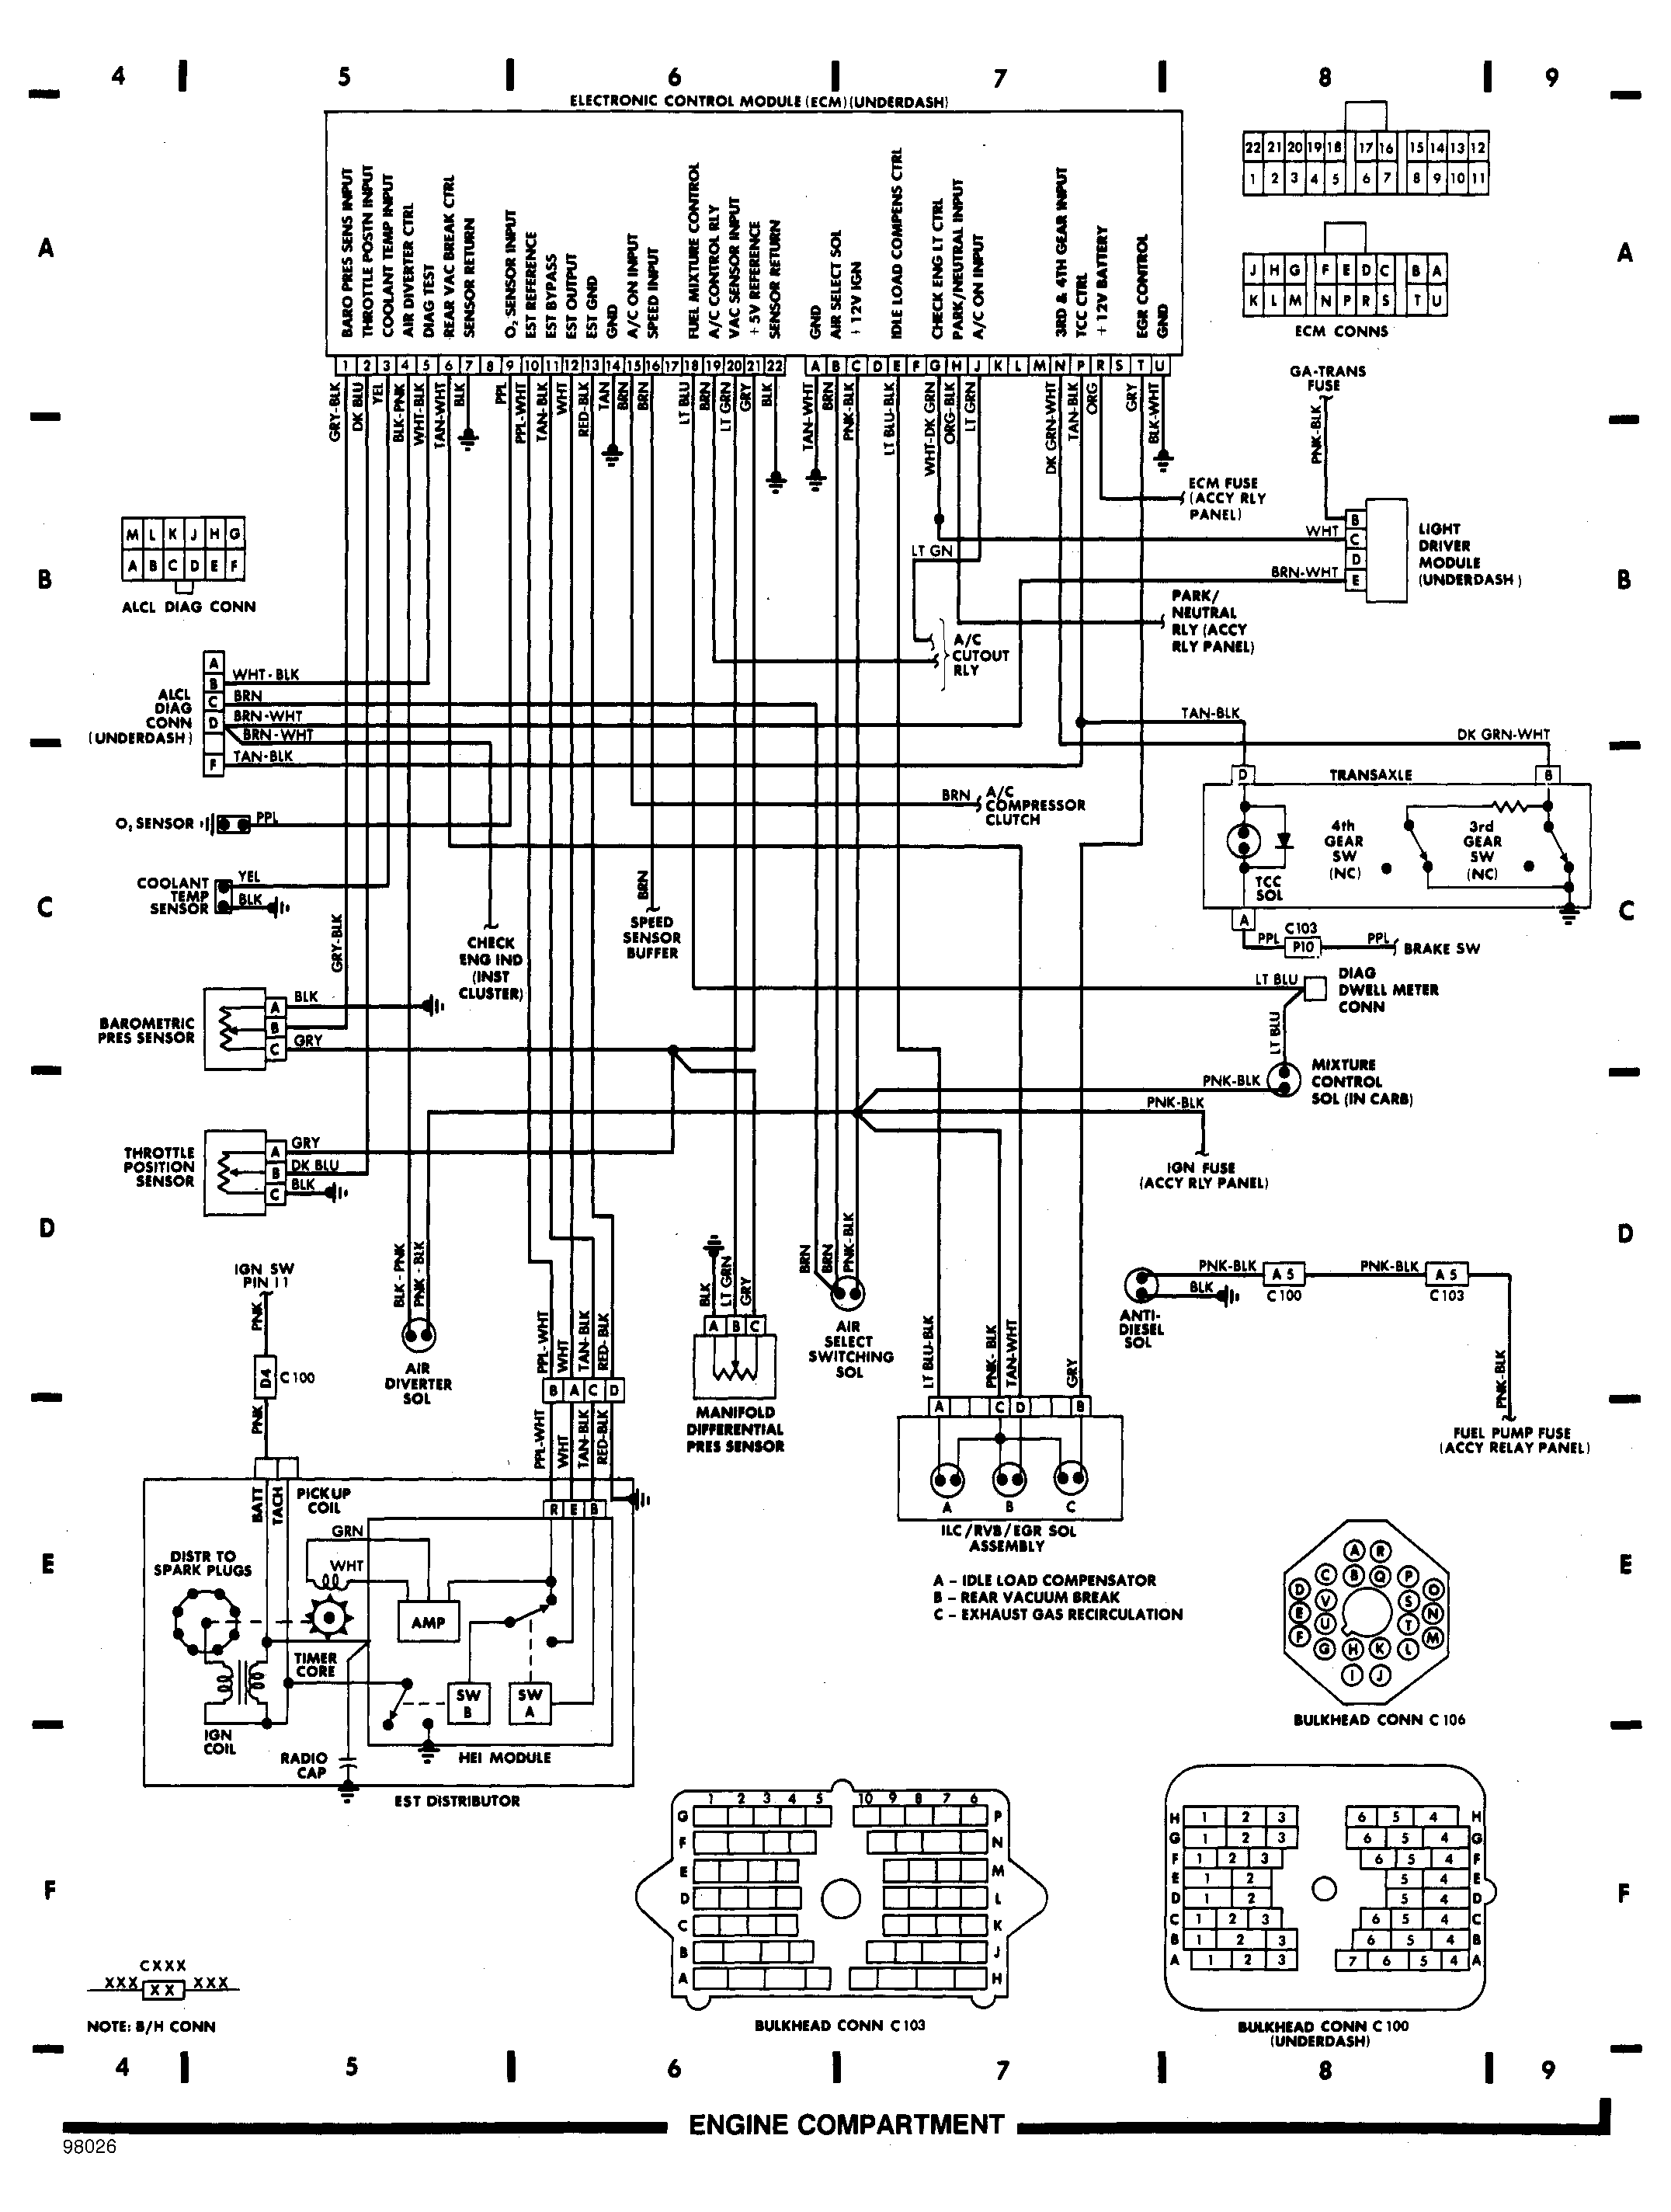 Cadillac Wiring Diagrams Manual Of Diagram 1979 Rh Cadillacresource Com 2005